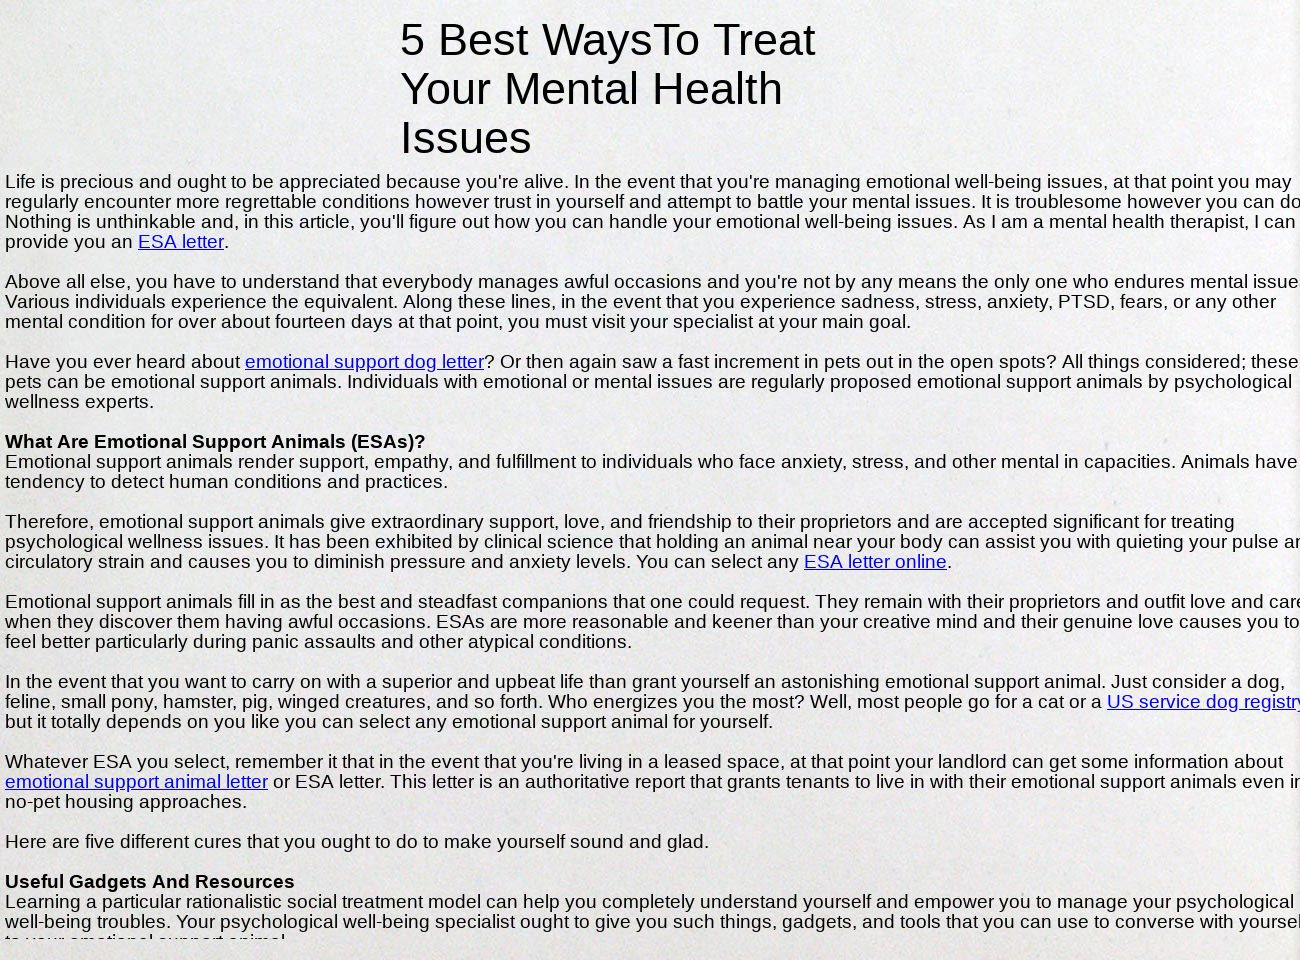 5 Best Ways To Treat Your Mental Health Issues